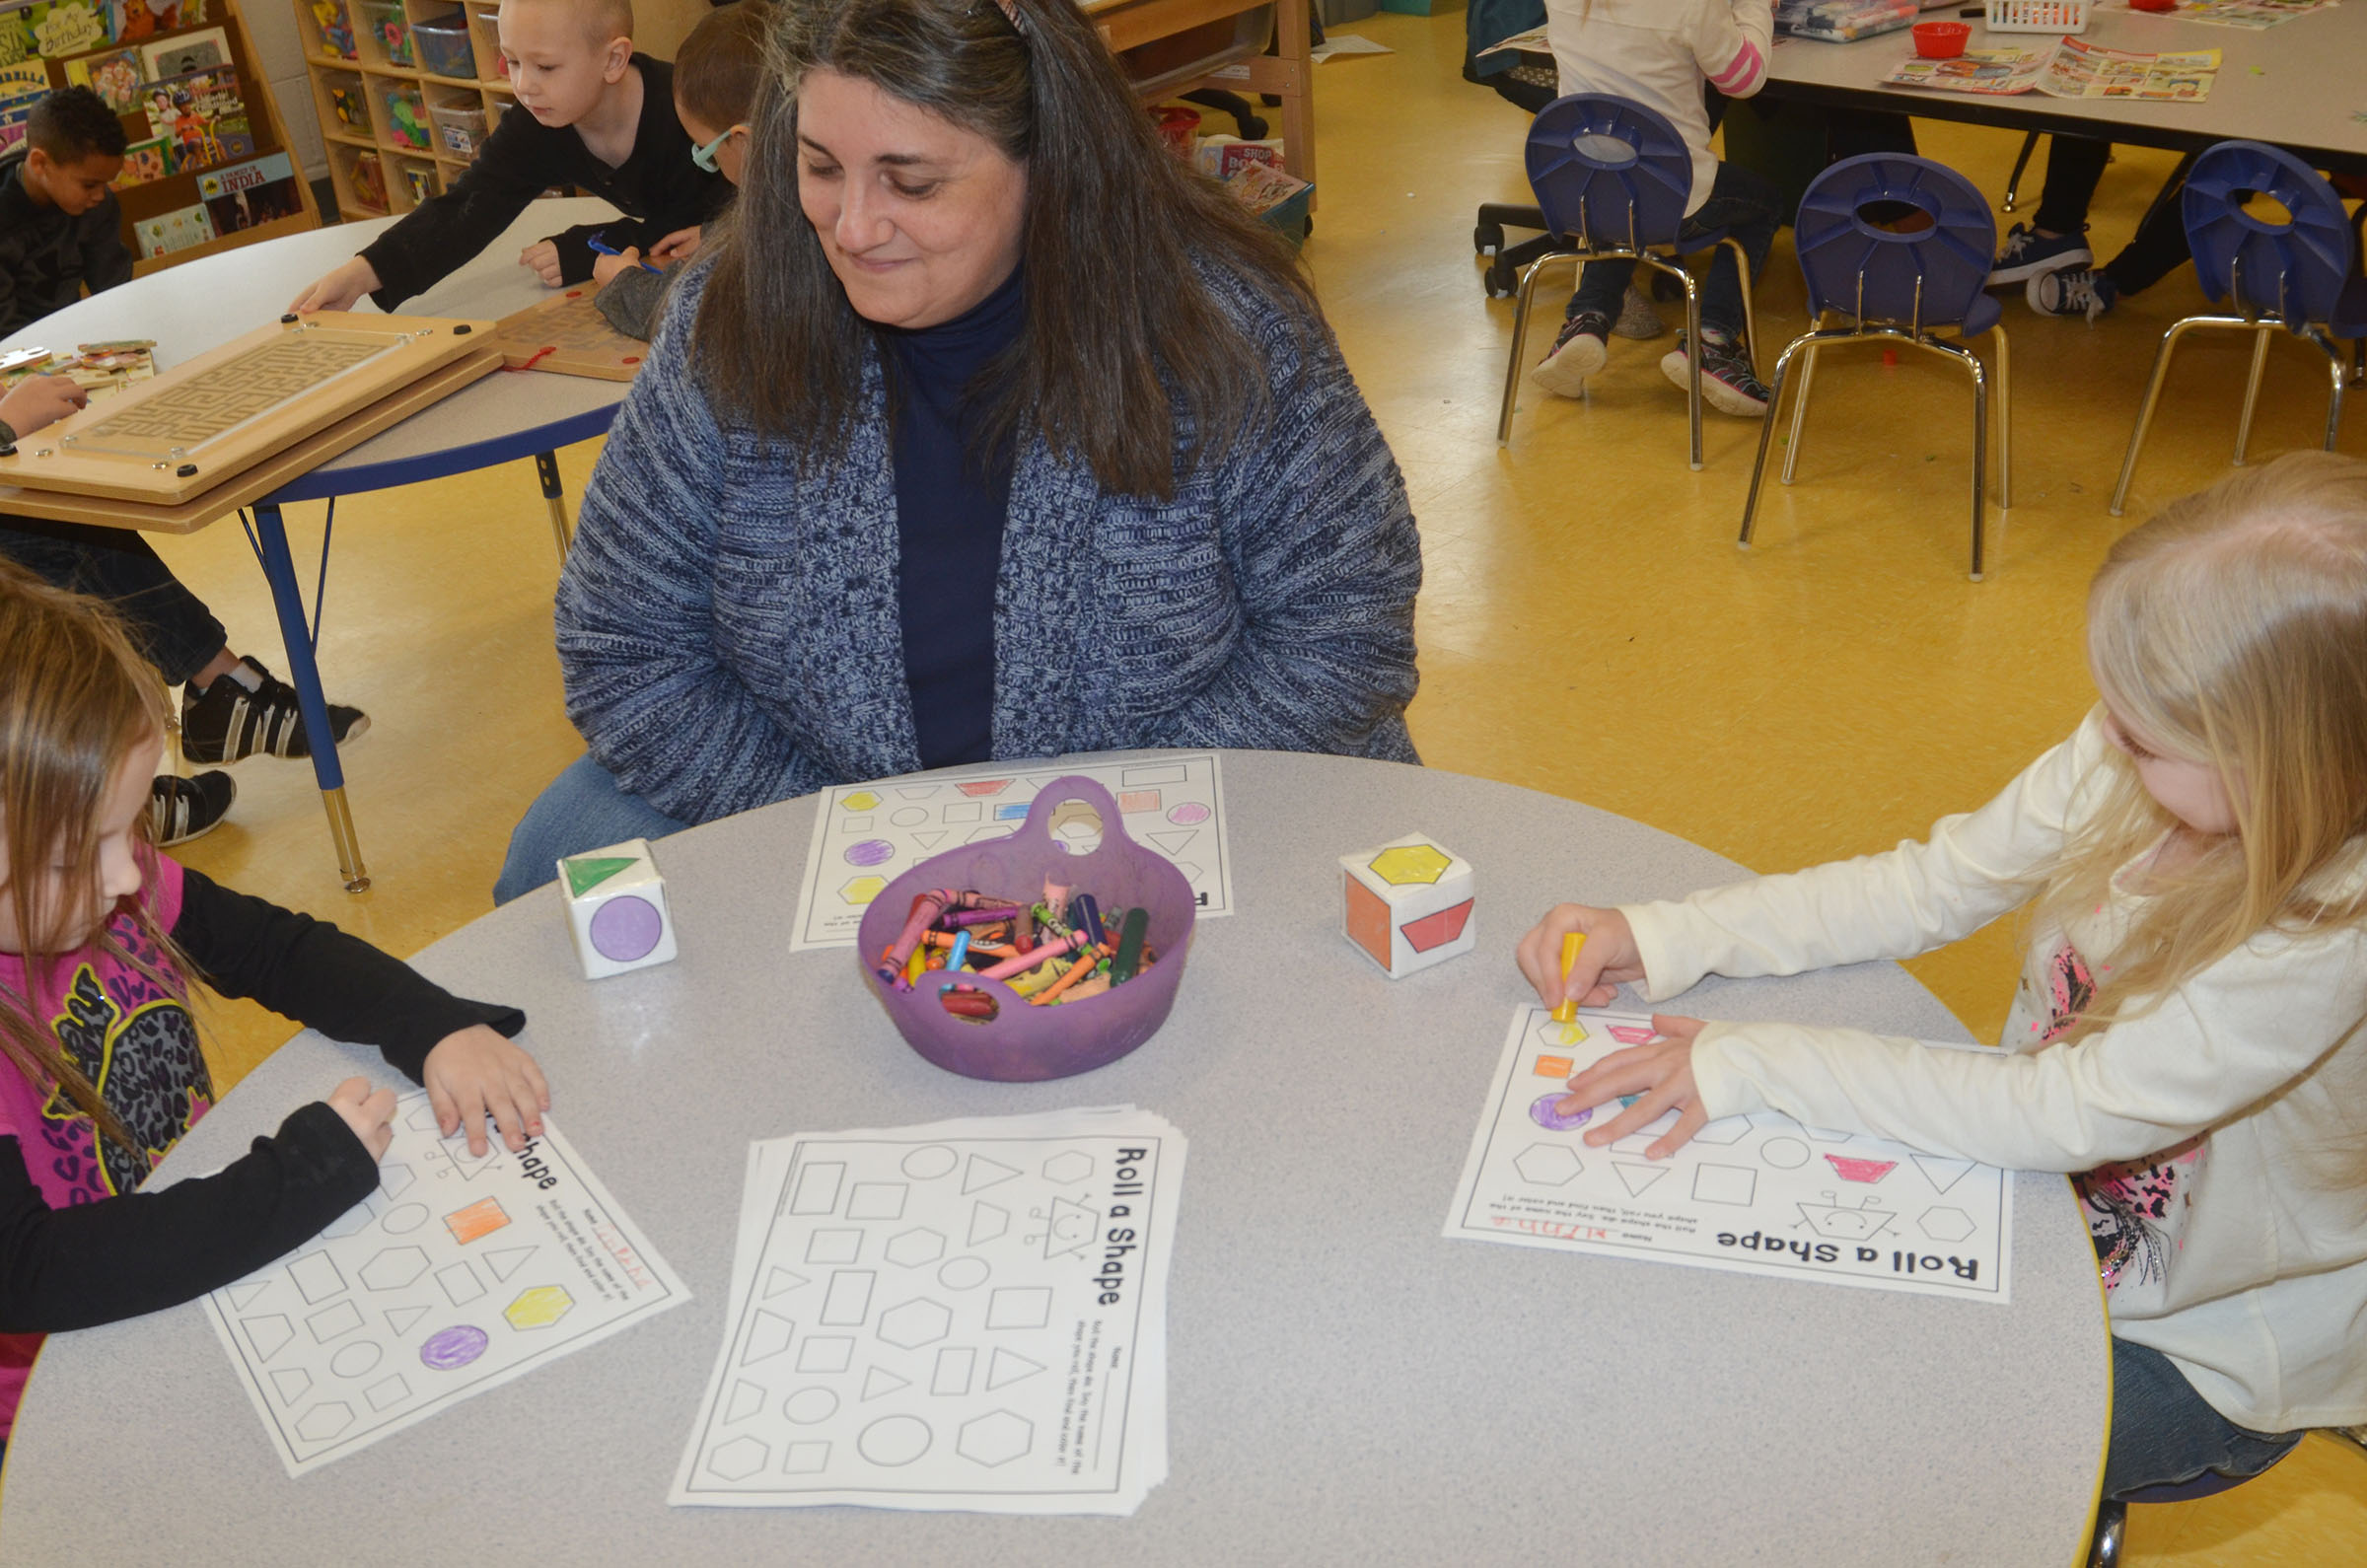 CES preschool teacher Sherry Cowherd plays Roll a Shape with Tabitha Leggett, at left, and Alinna Bray.